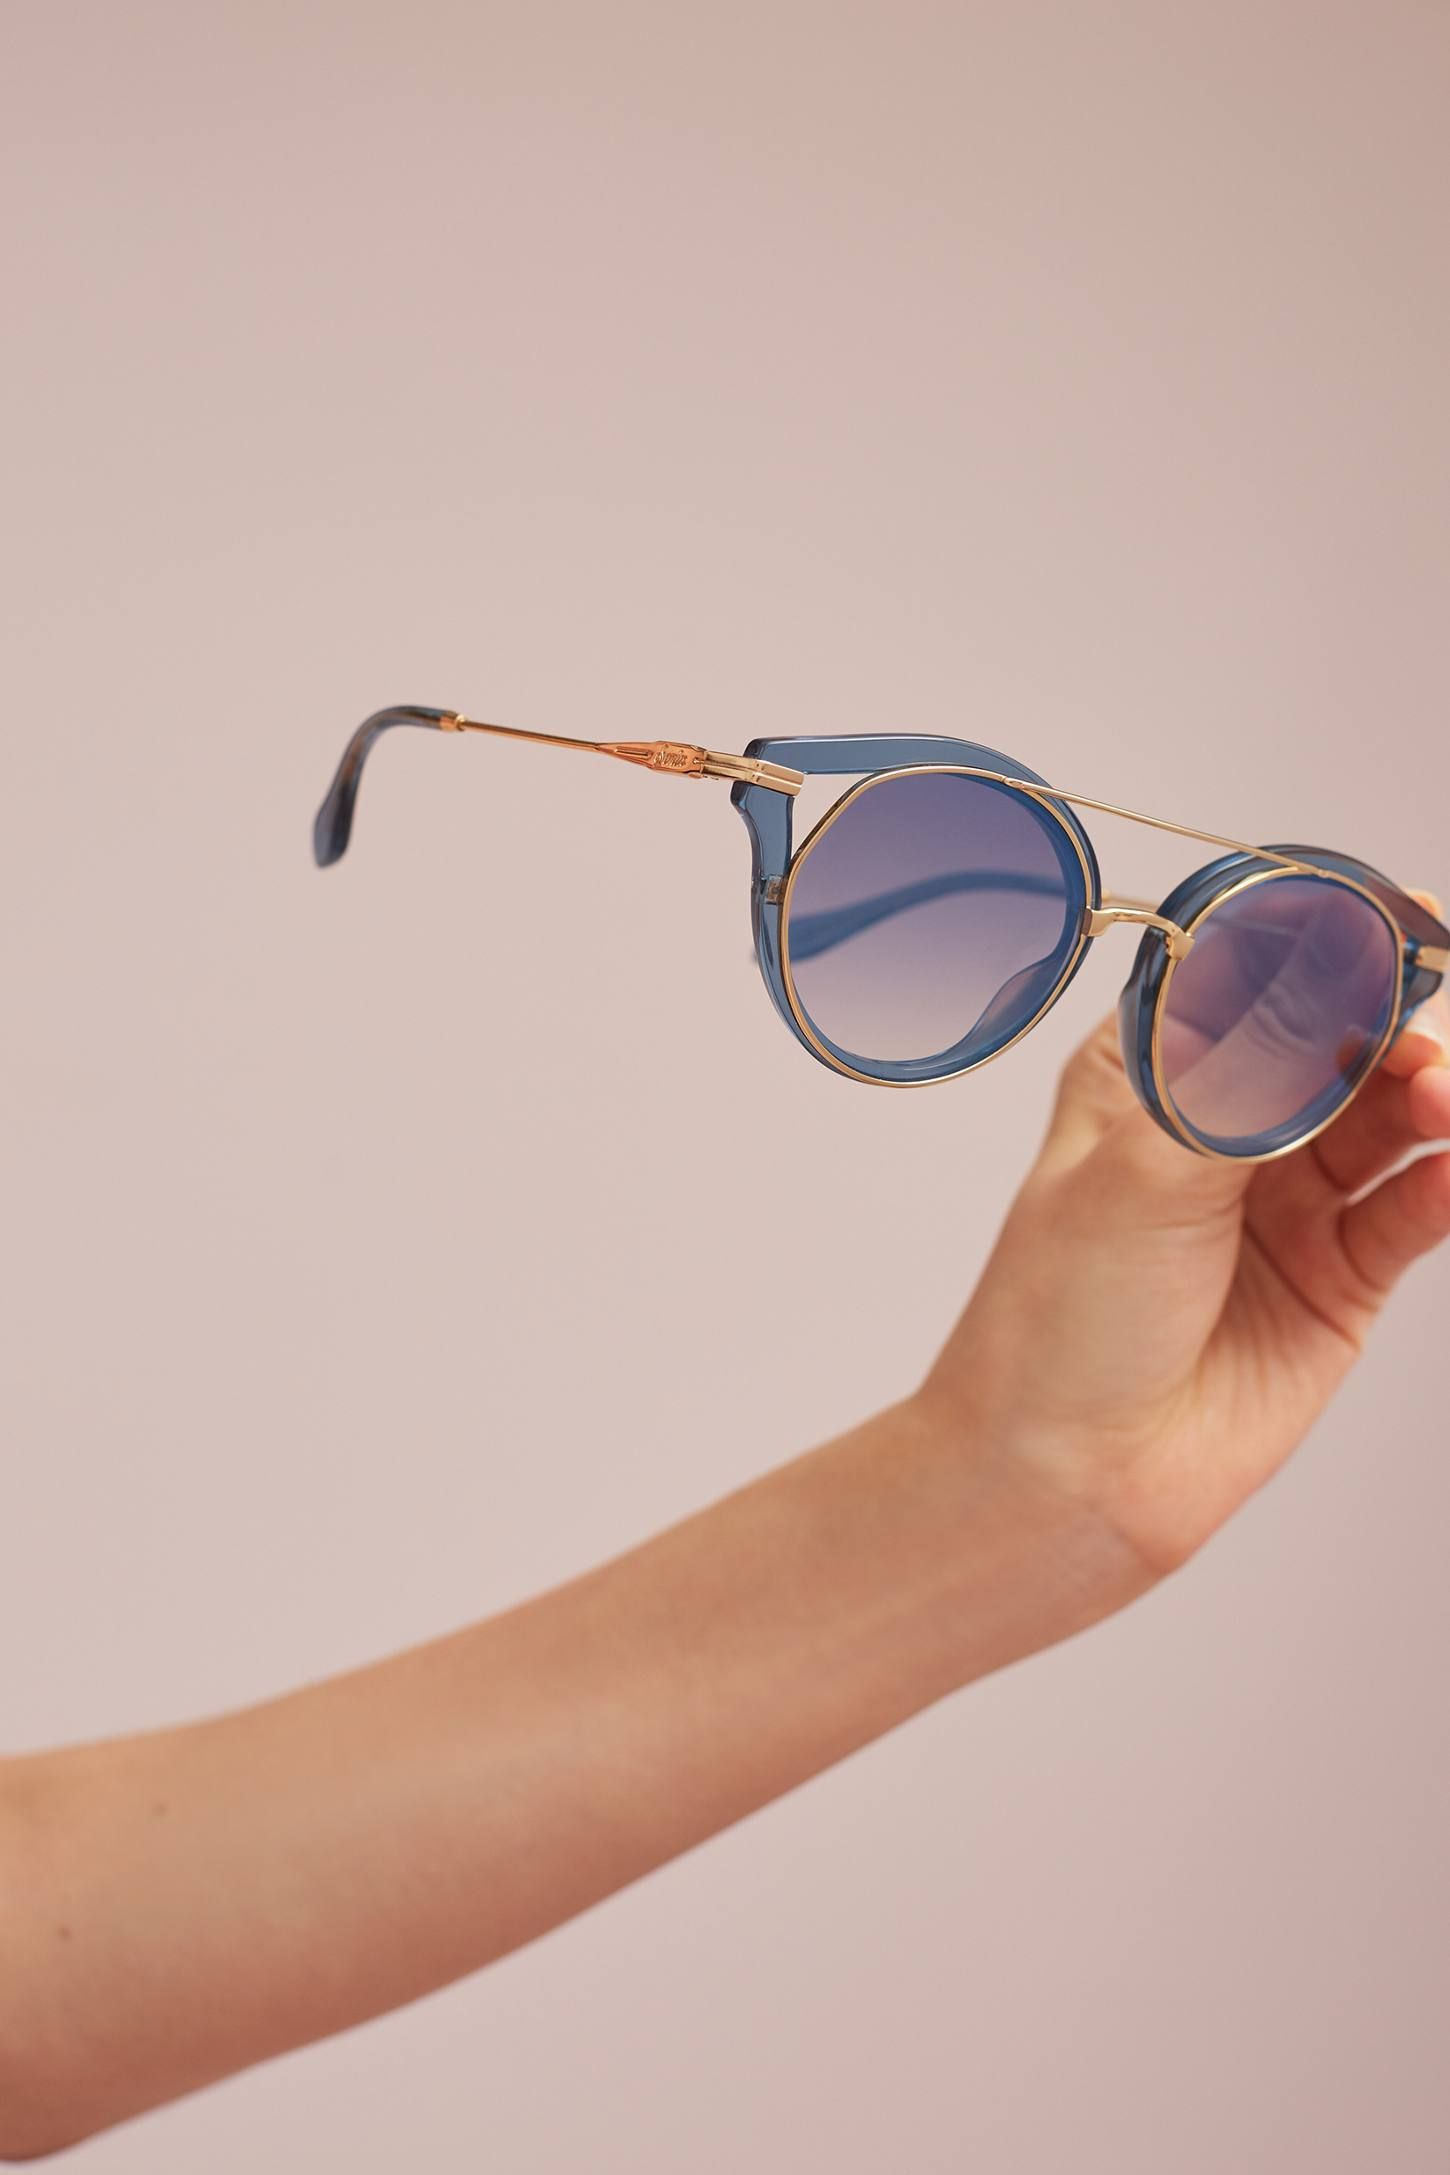 fa8464fee0 Shop the Sonix Preston June Sunglasses and more Anthropologie at Anthropologie  today. Read customer reviews